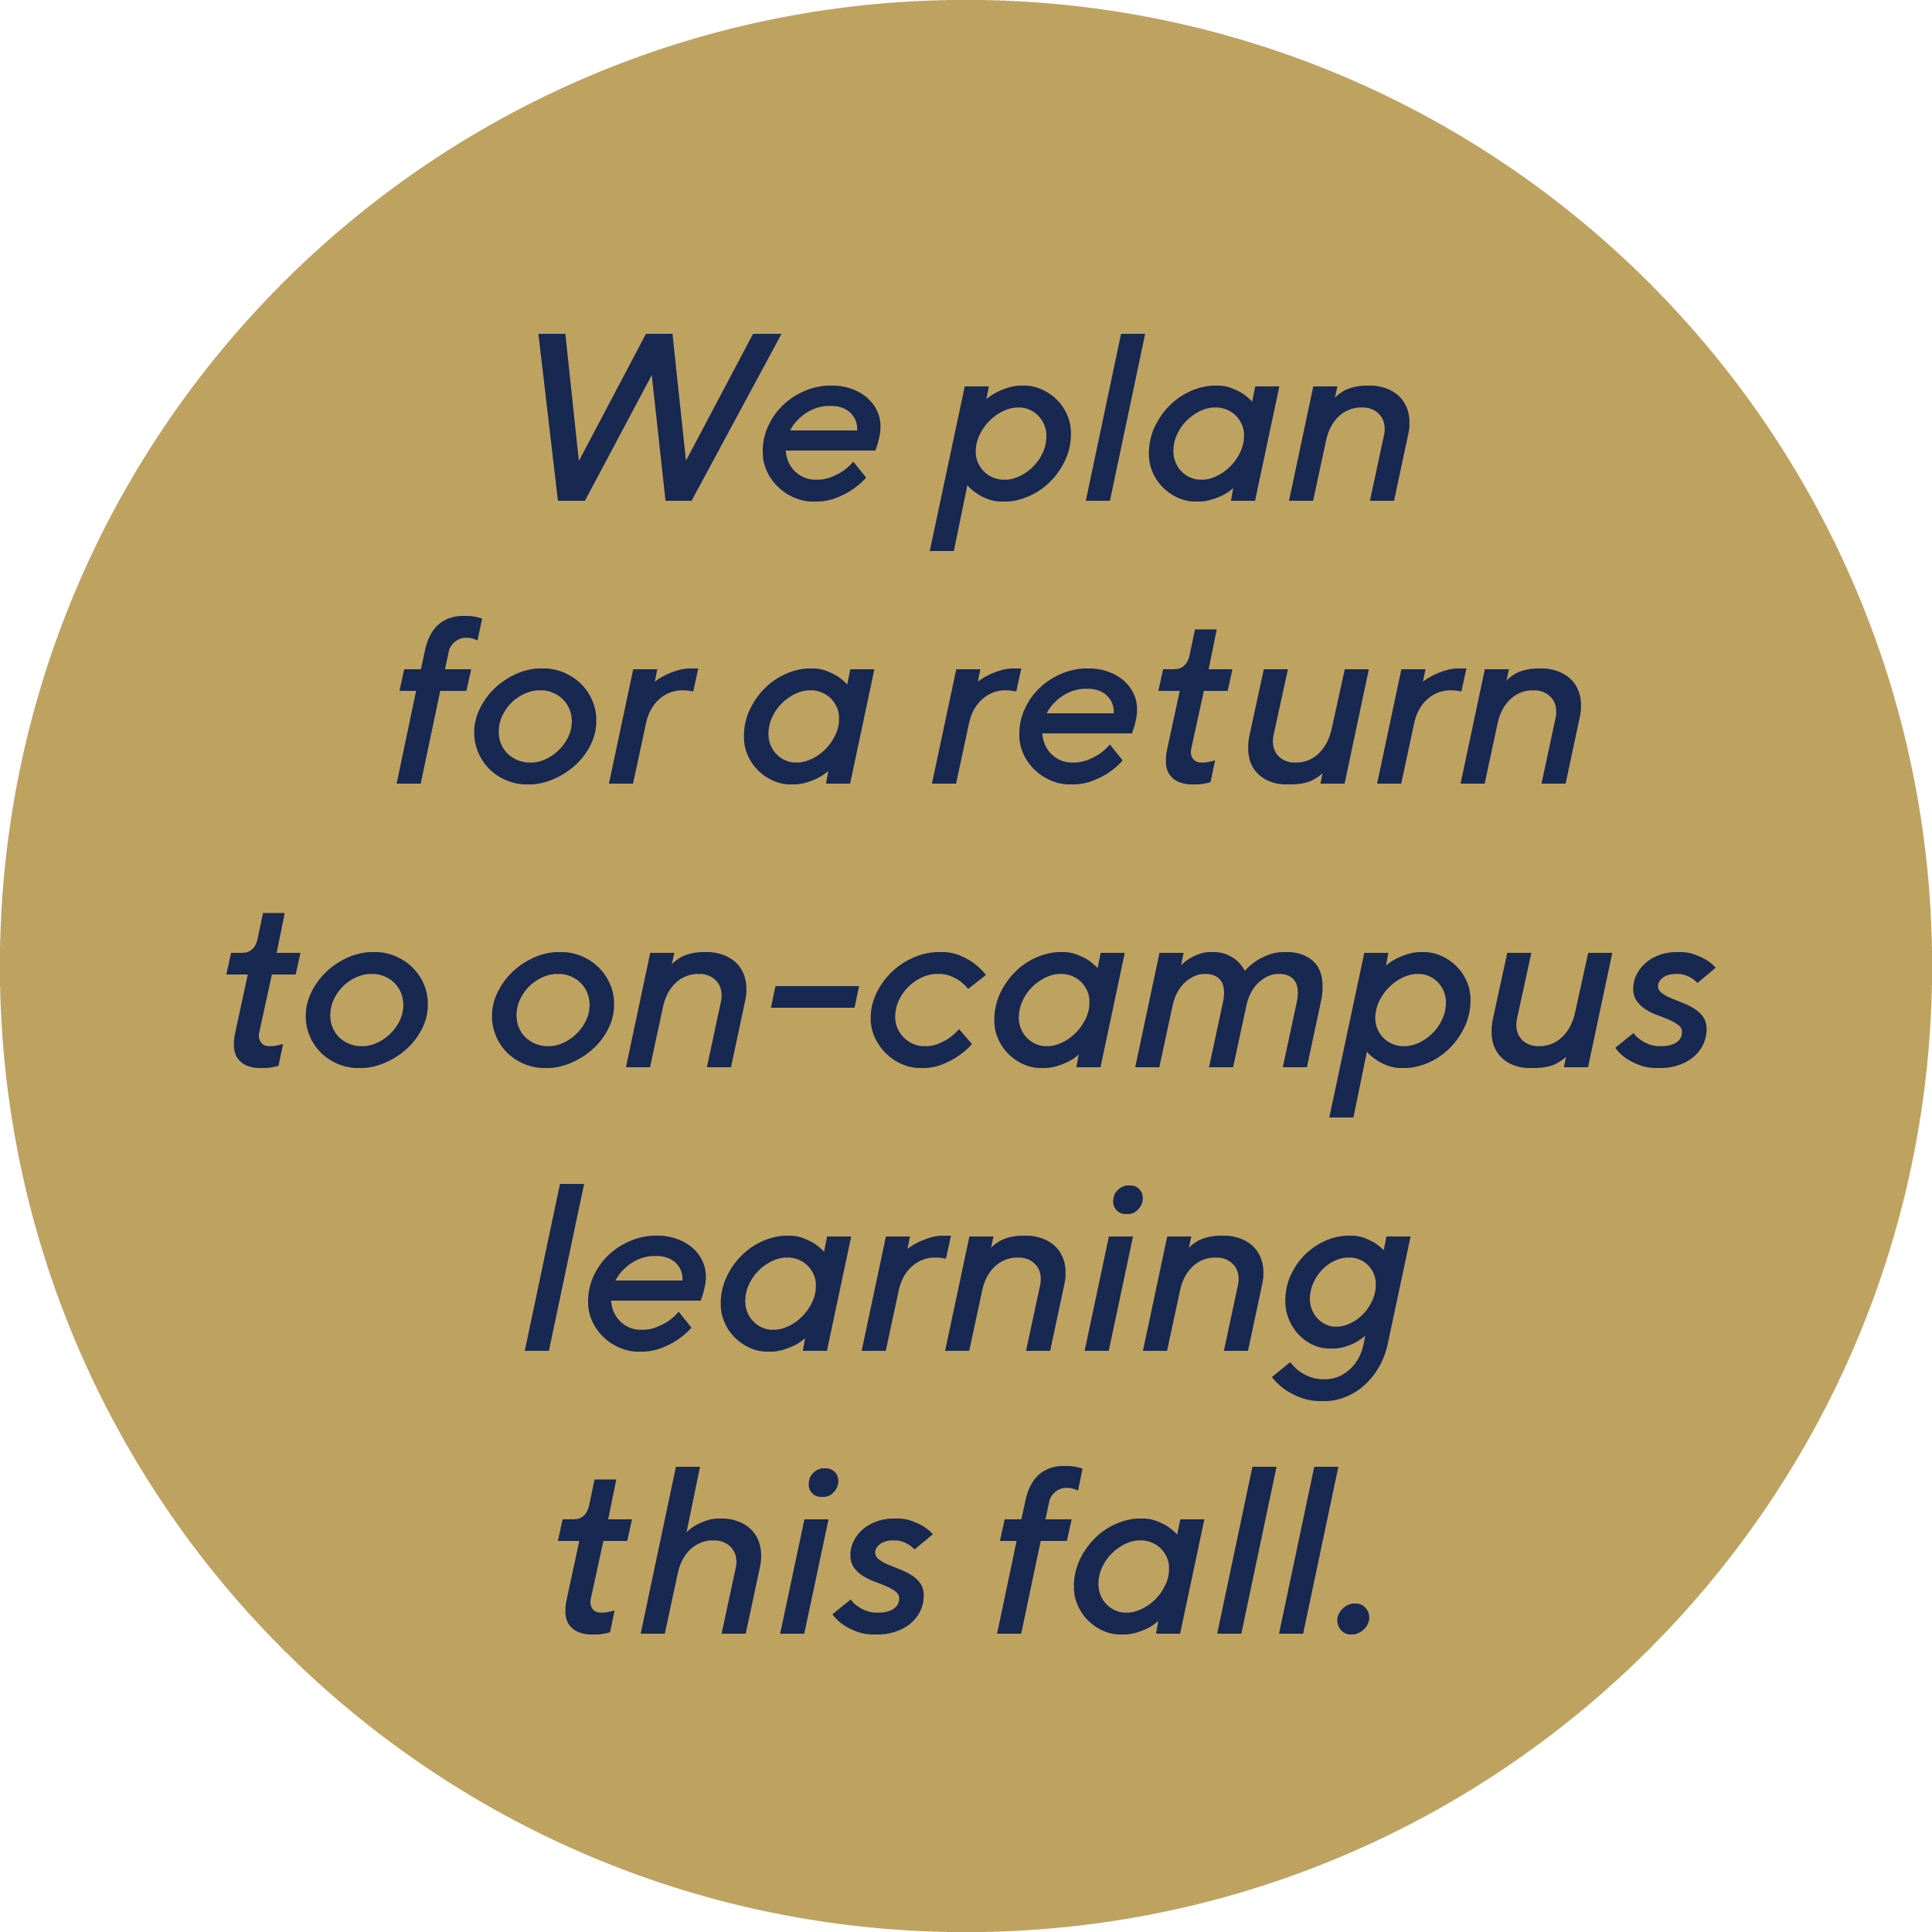 We plan for a return to on-campus learning